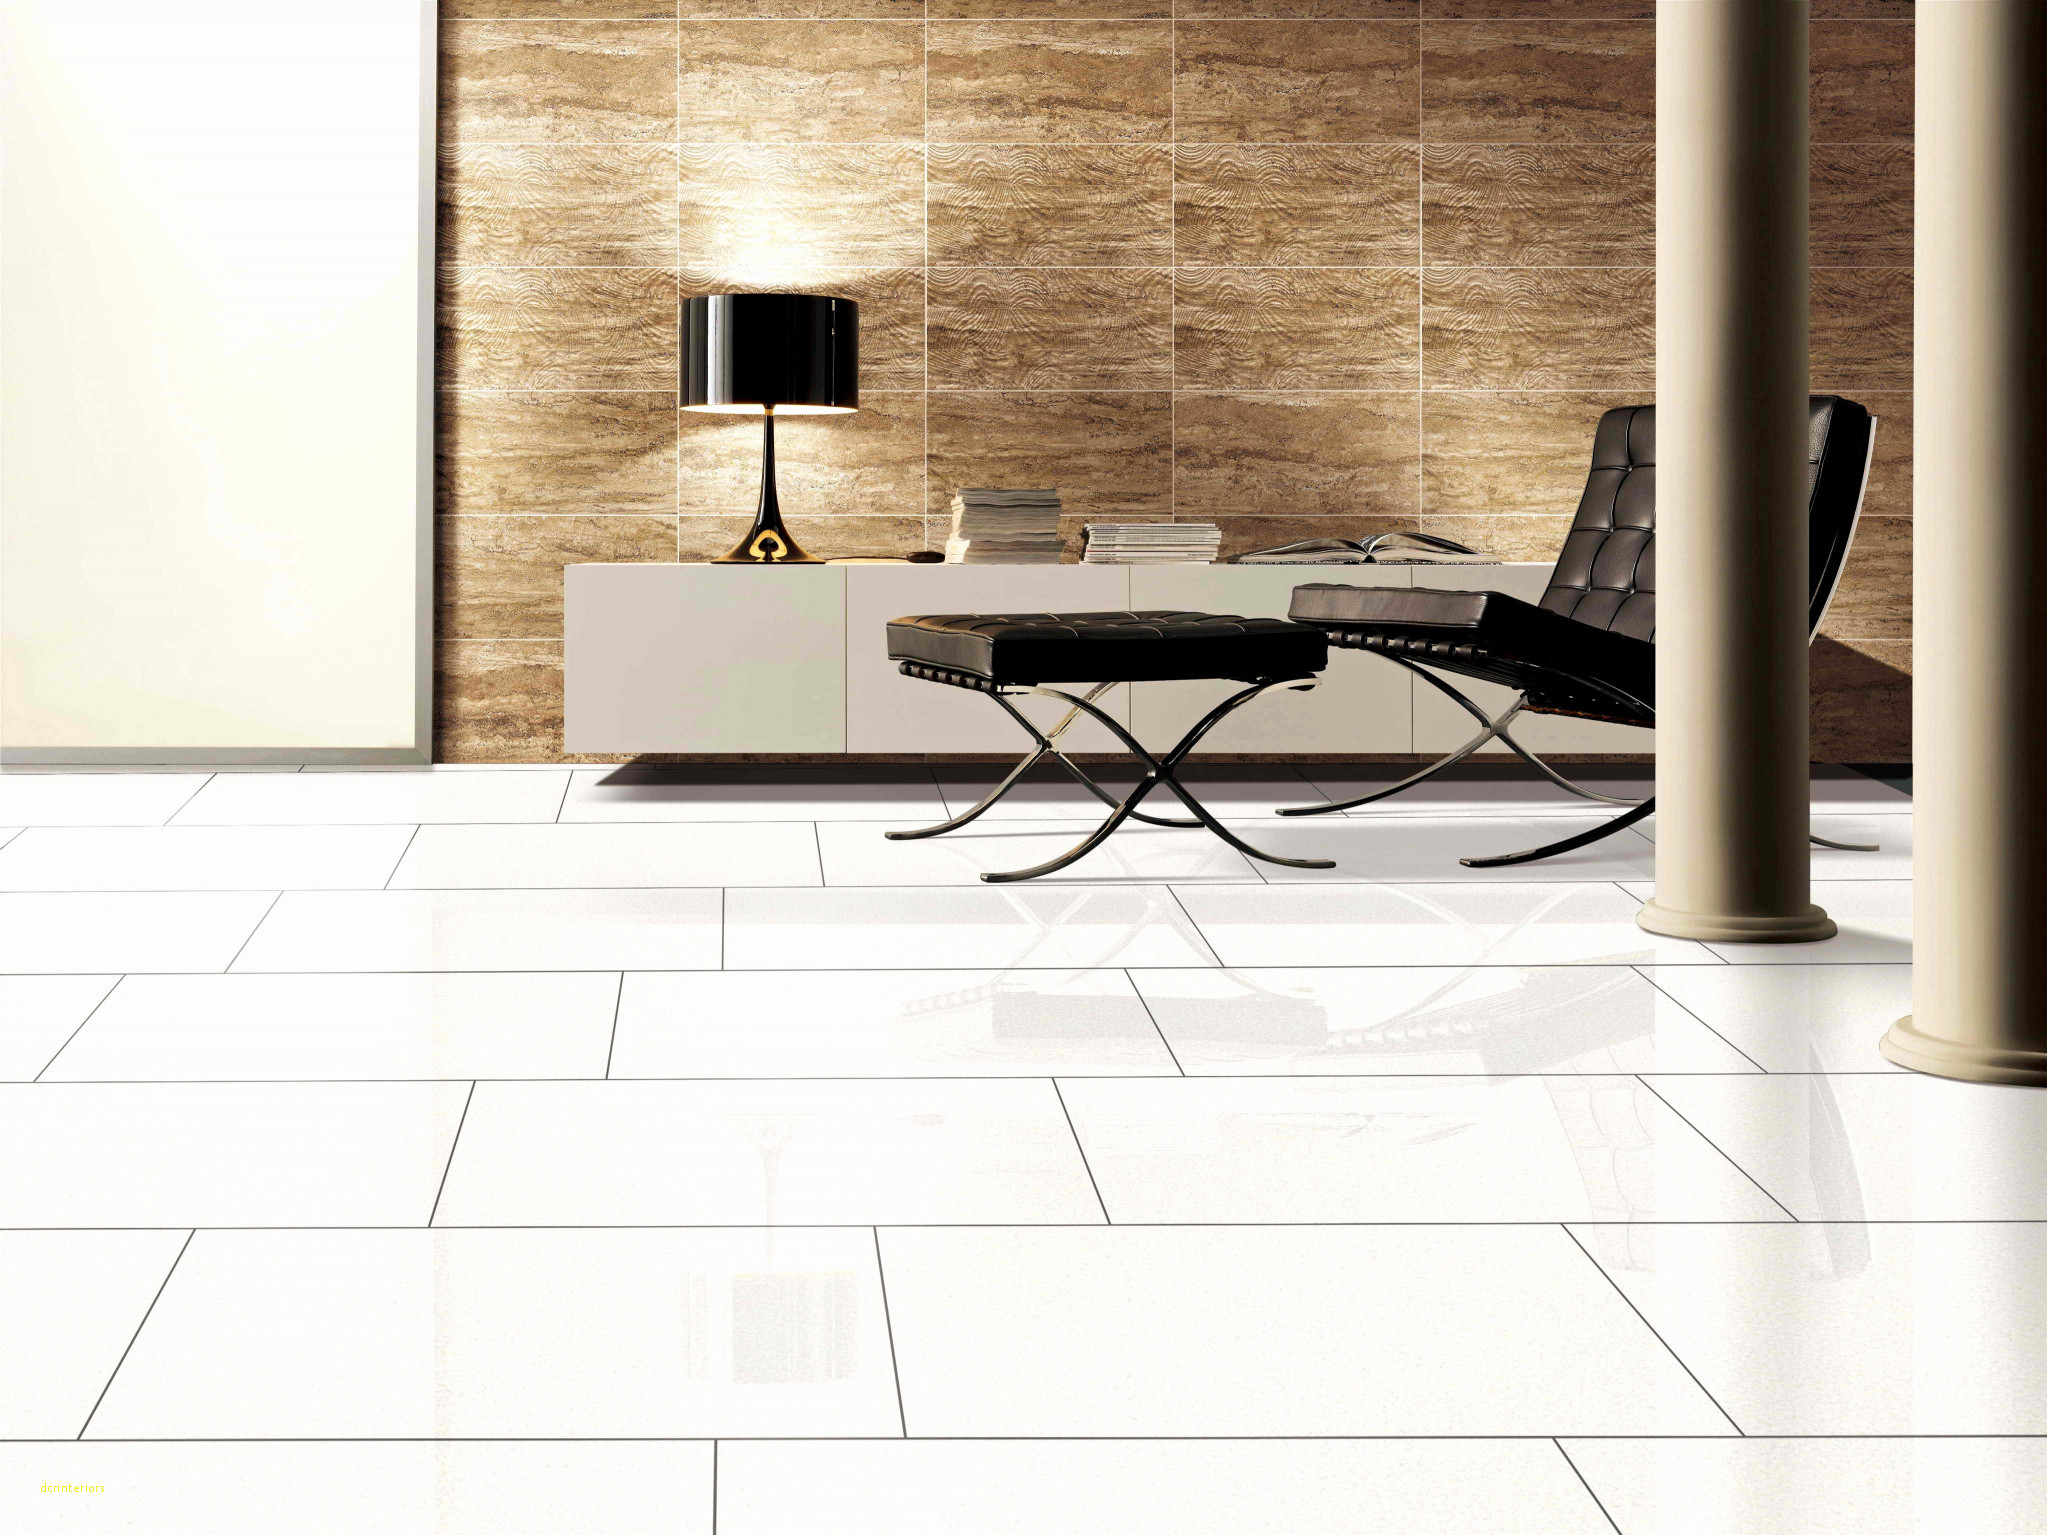 hardwood floor colors 2018 of 24 contemporary porcelain floors concept within porcelain tiles for bathroom beautiful floor tiles mosaic bathroom 0d new bathroom floor tiles home